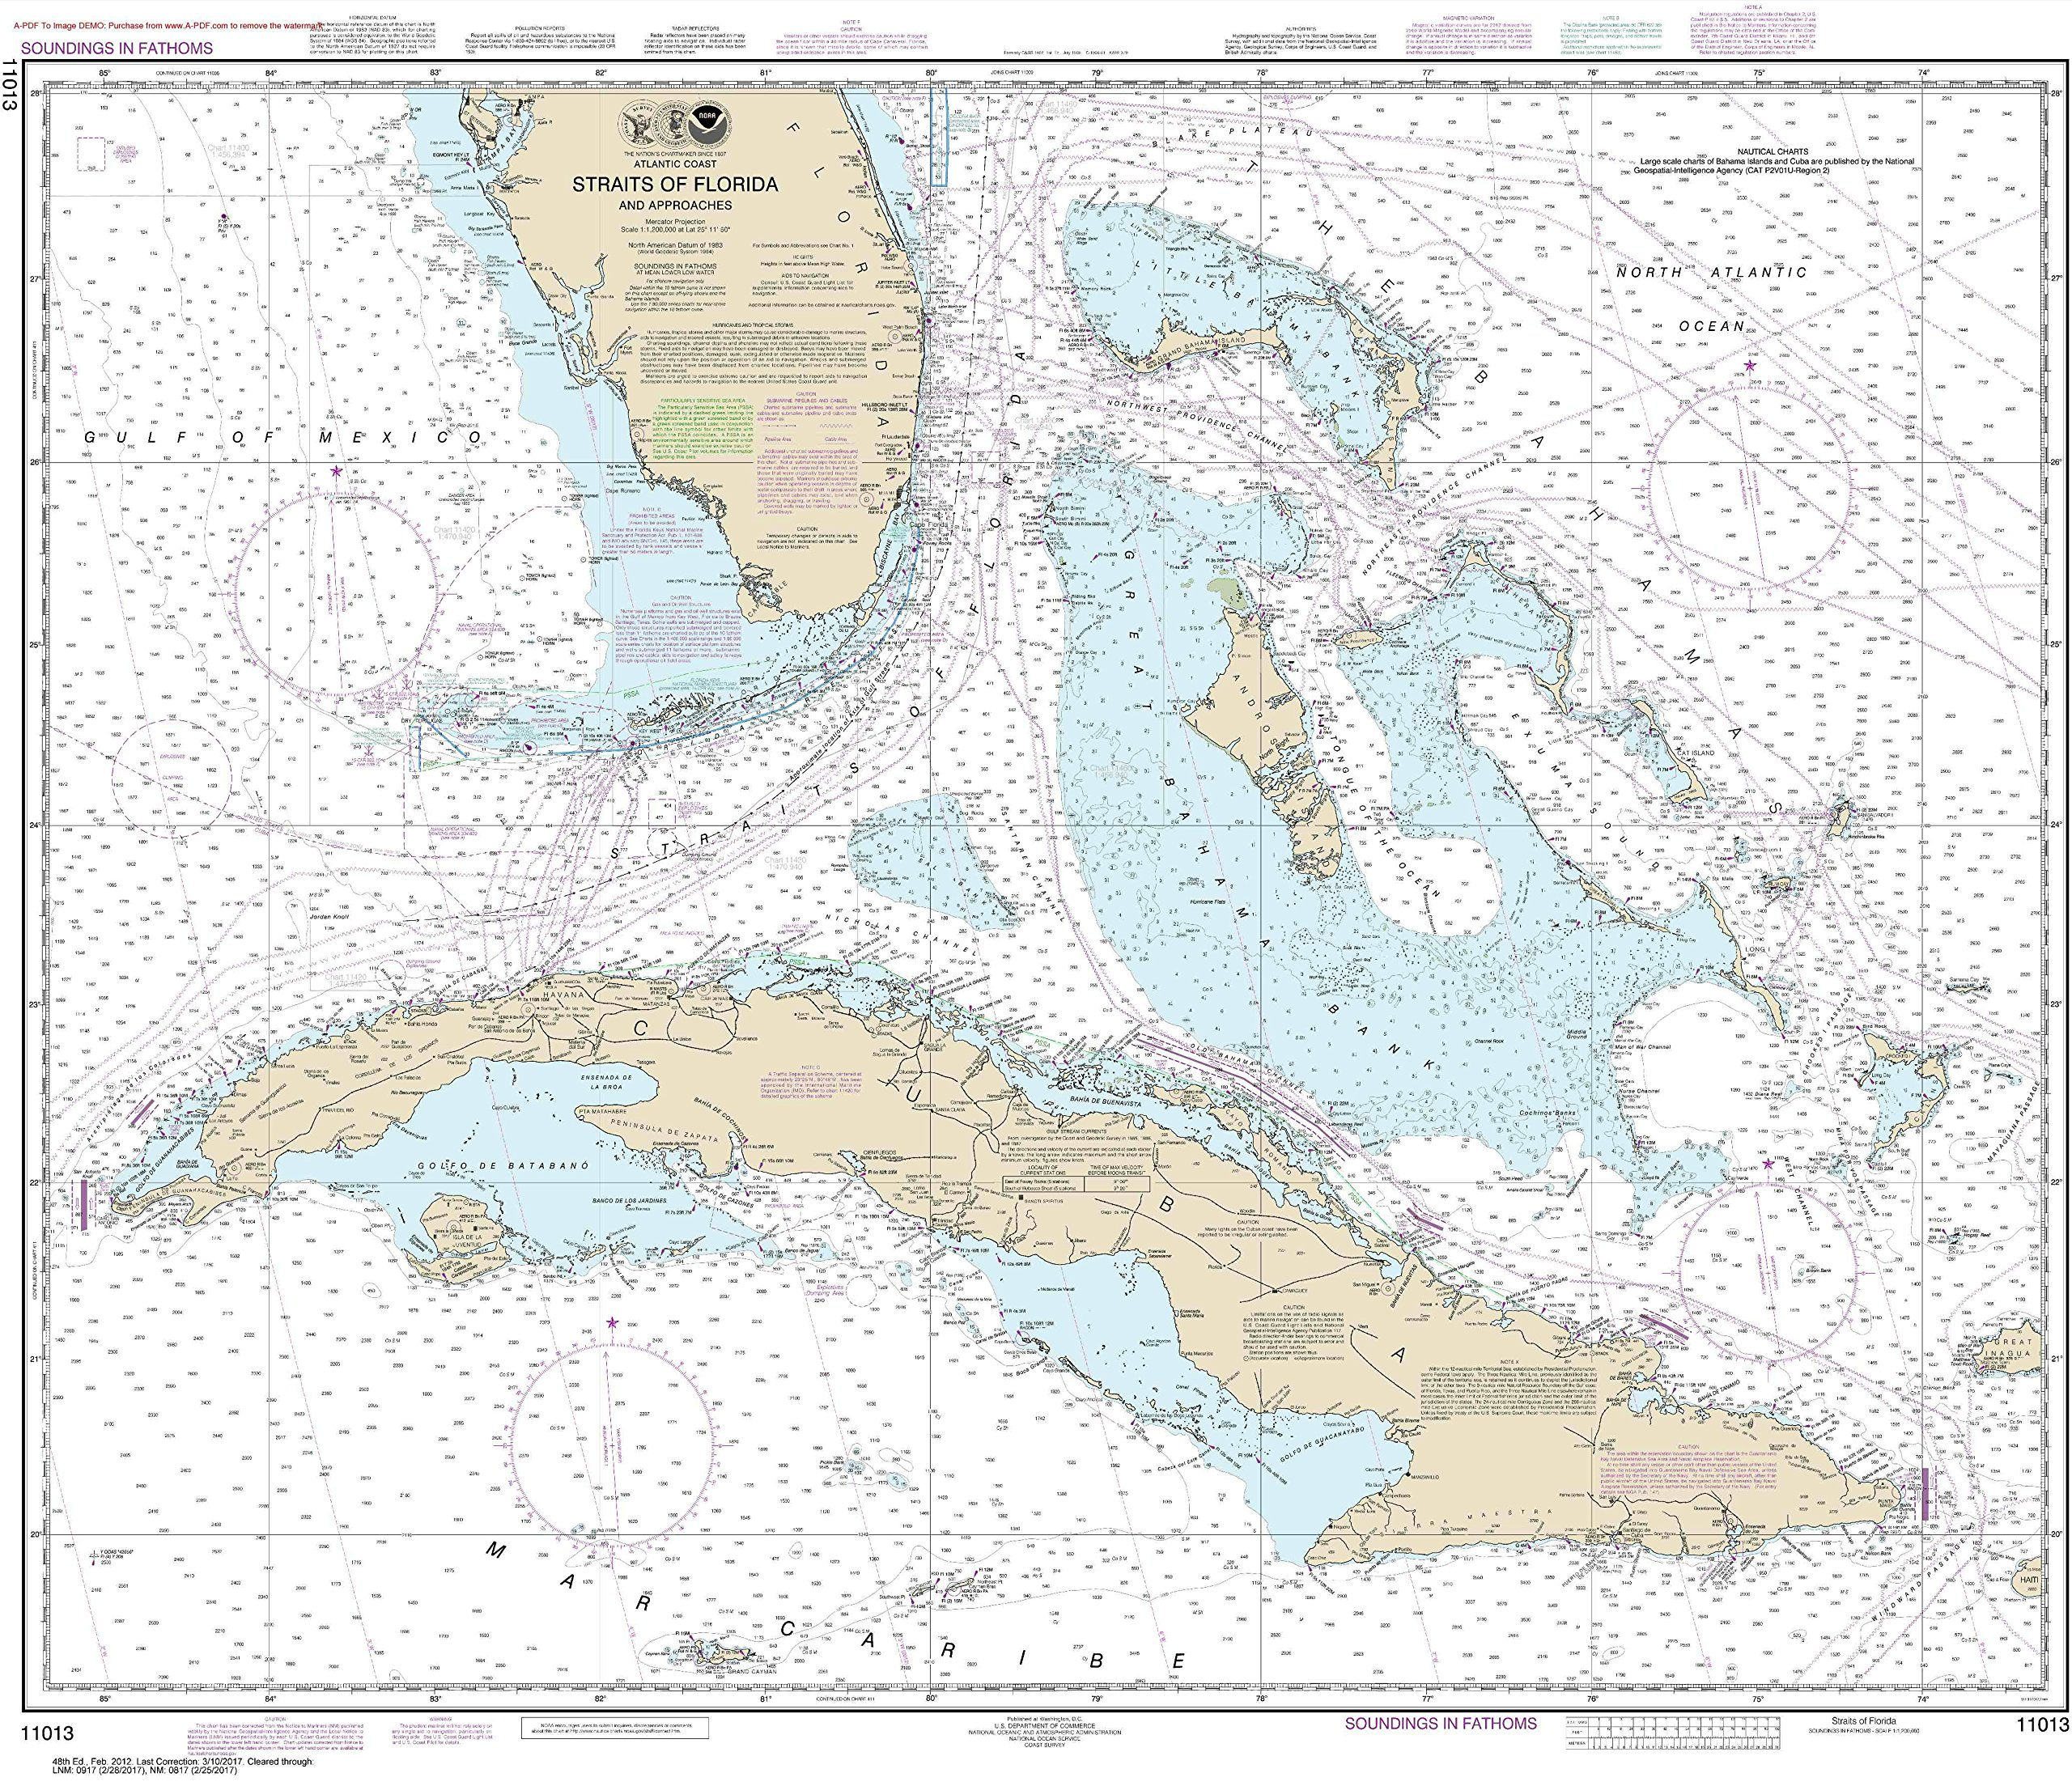 NOAA Chart 11013 Straits of Florida and Approaches: 35.7'' X 41.4'' Laminated Map